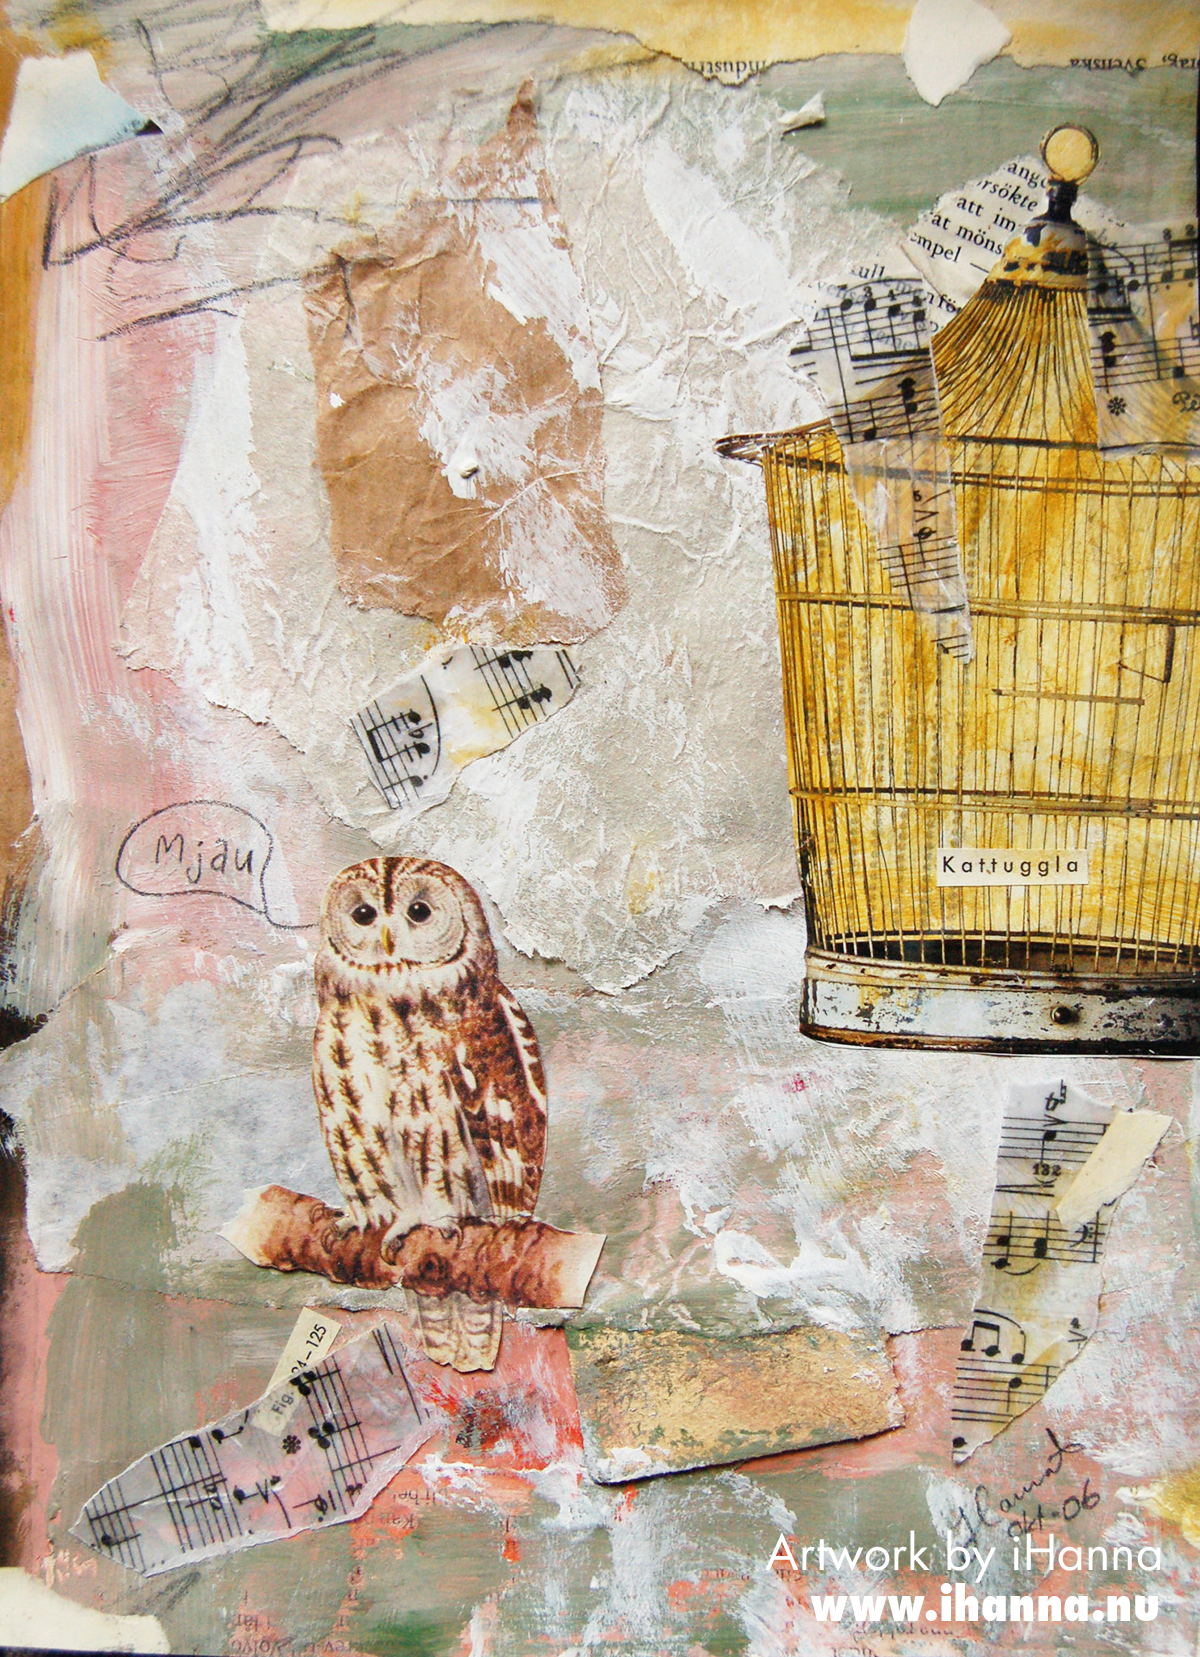 Cat Owl mixed media artwork 2006 by Hanna Andersson - iHanna of www.ihanna.nu #collage